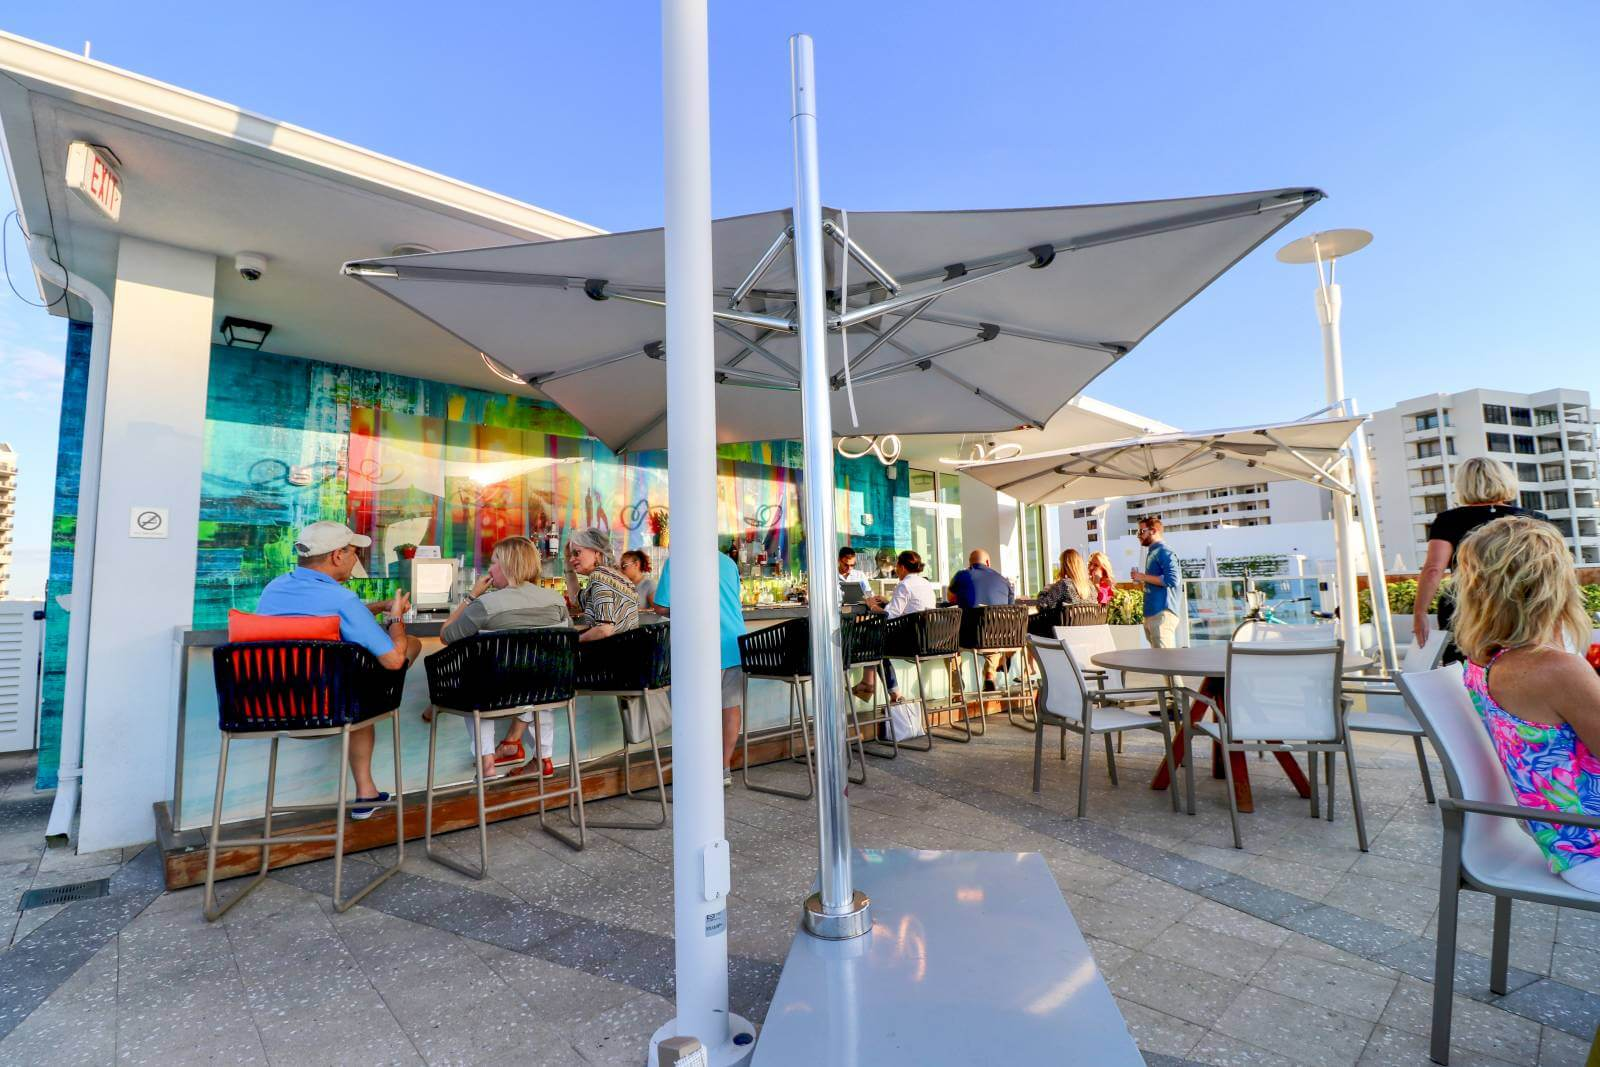 Rooftop bar at Art Ovation Hotel downtown Sarasota, Florida. Photo by Laurén Ettinger. Must Do Visitor Guides | MustDo.com